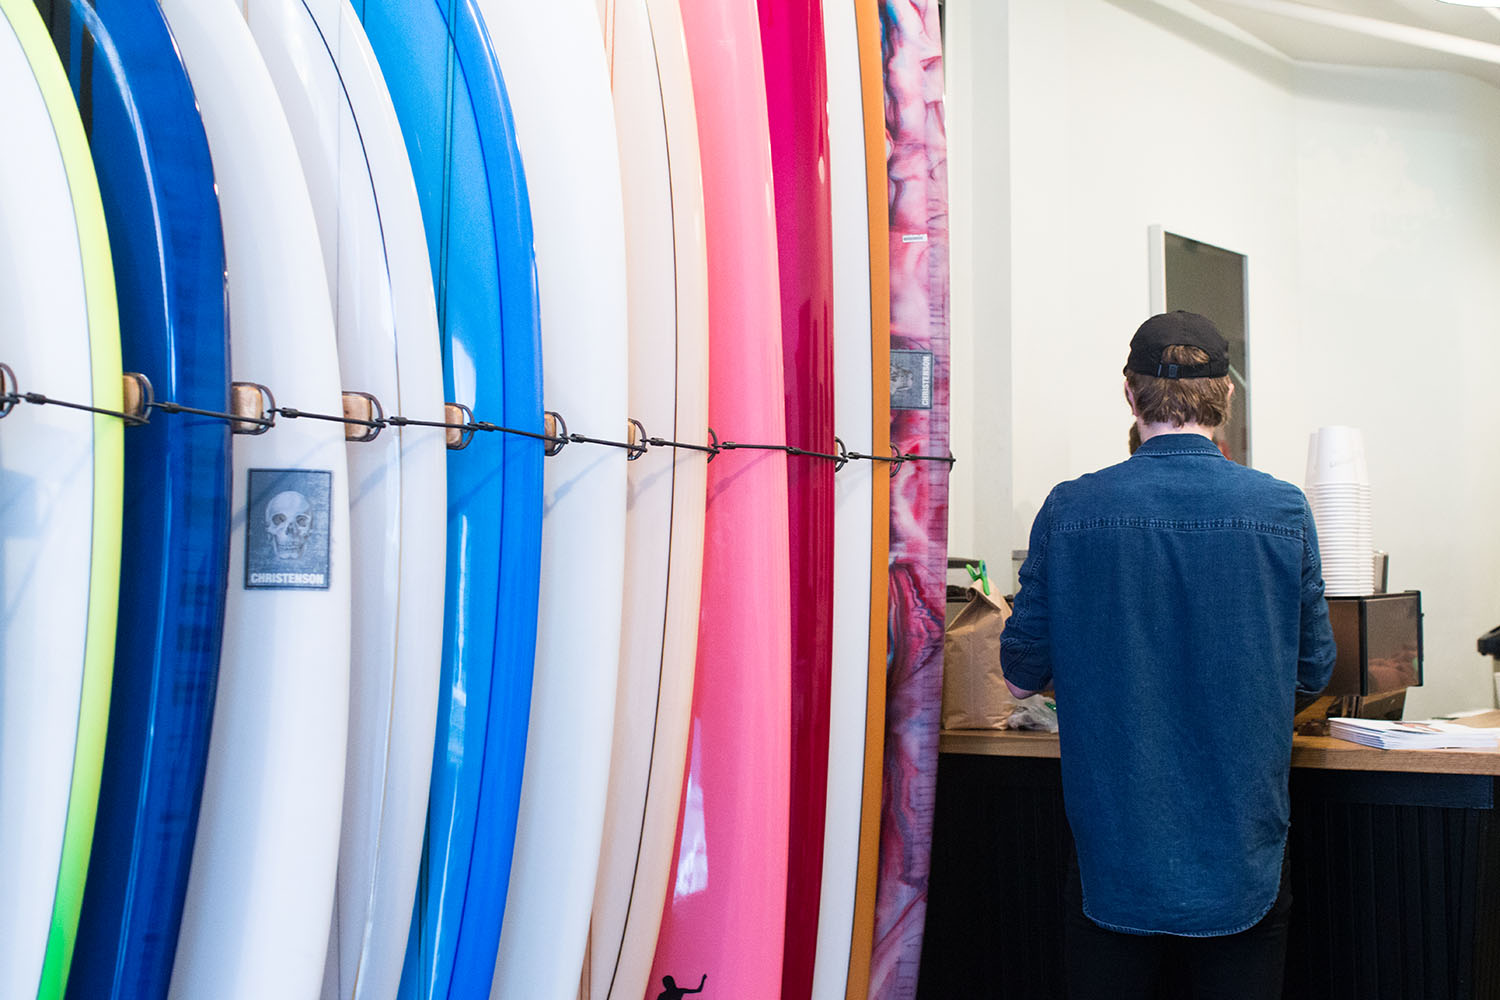 A coffee counter tucked in behind the surfboards at  Saturdays NYC  in Soho.